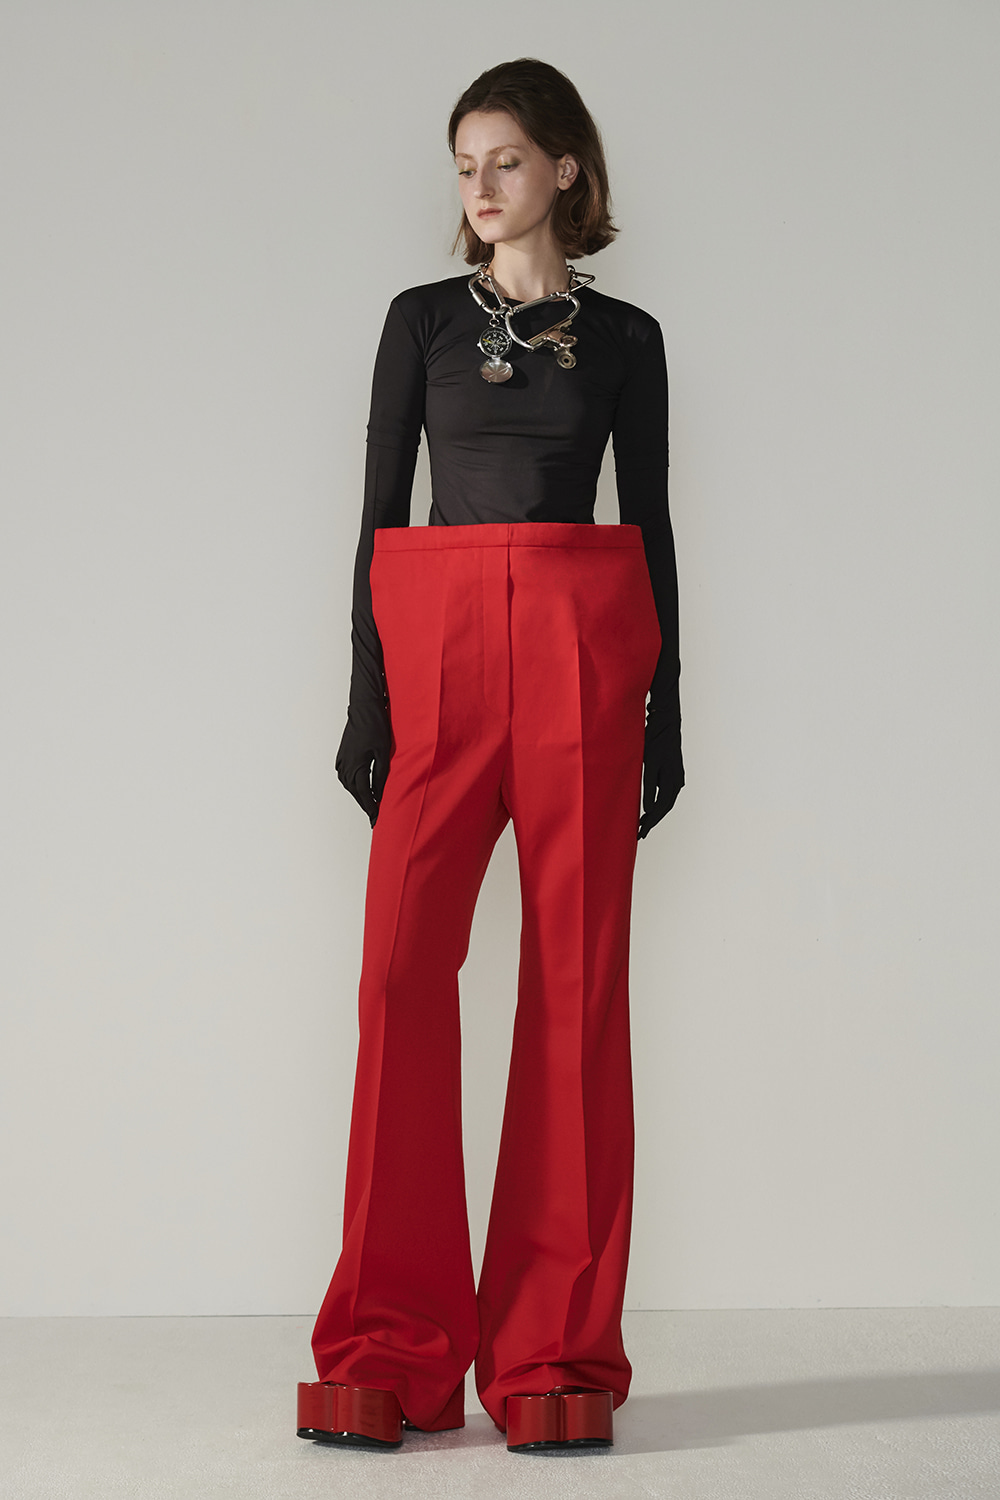 SS21 FRONT-UP BELL BOTTON RED PANTS